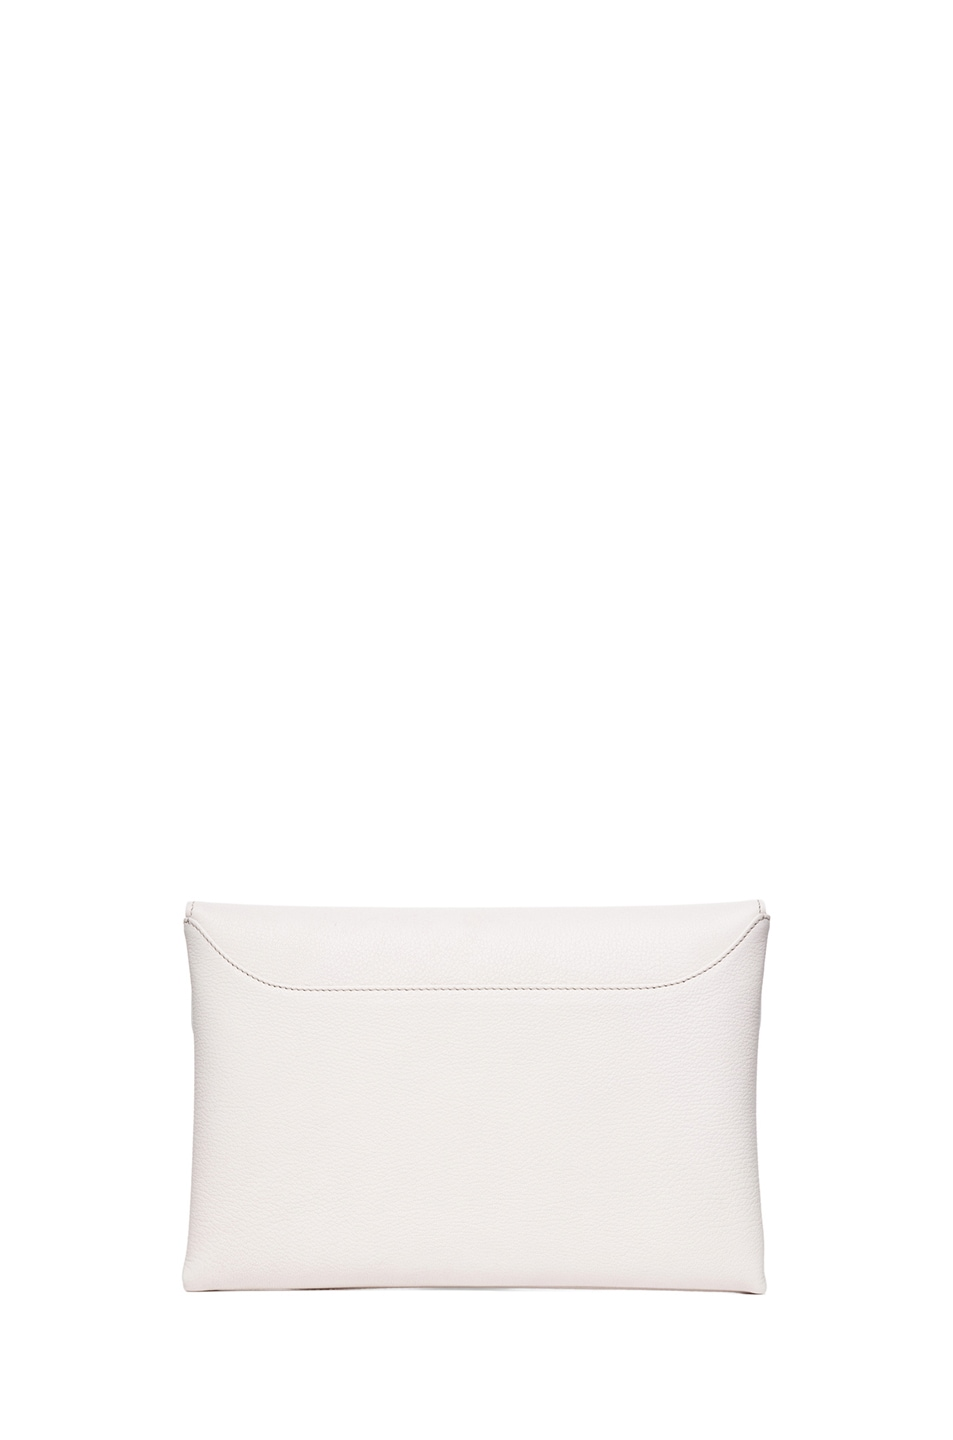 Image 2 of GIVENCHY Medium Antigona Envelope Clutch in Ivory